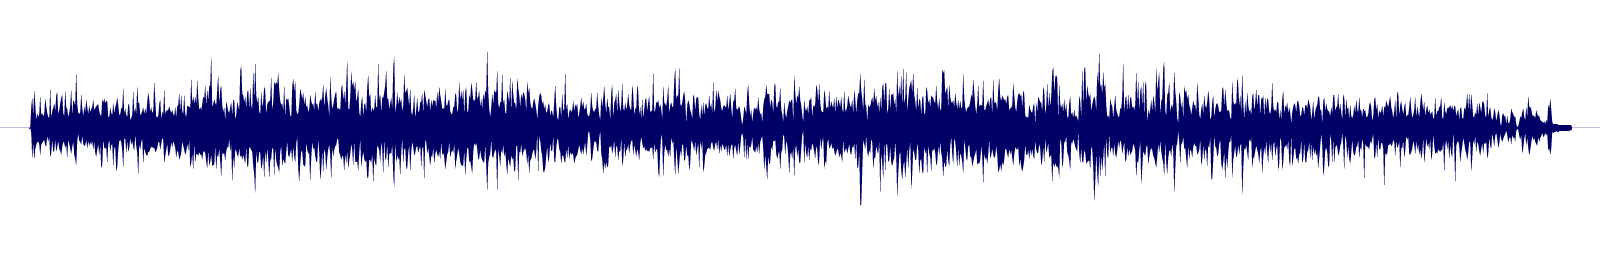 waveform of track #142122